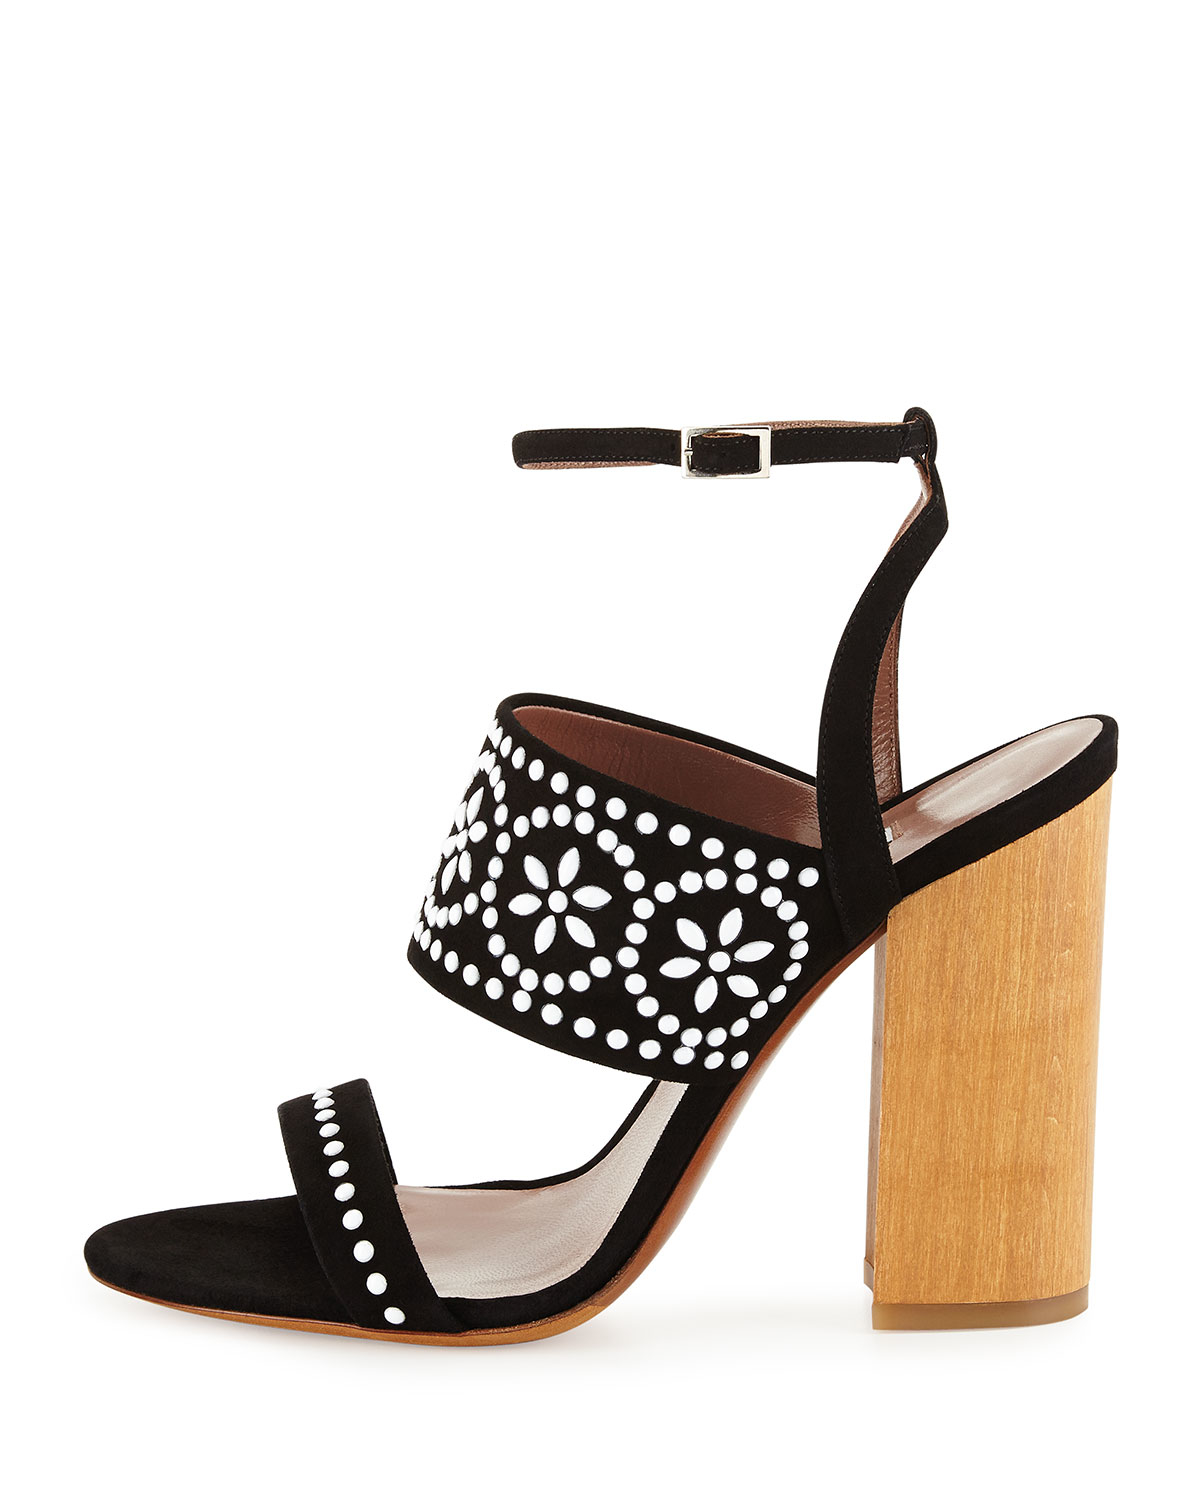 Tabitha Simmons Suede Cage Sandals view for sale 5sz8Q